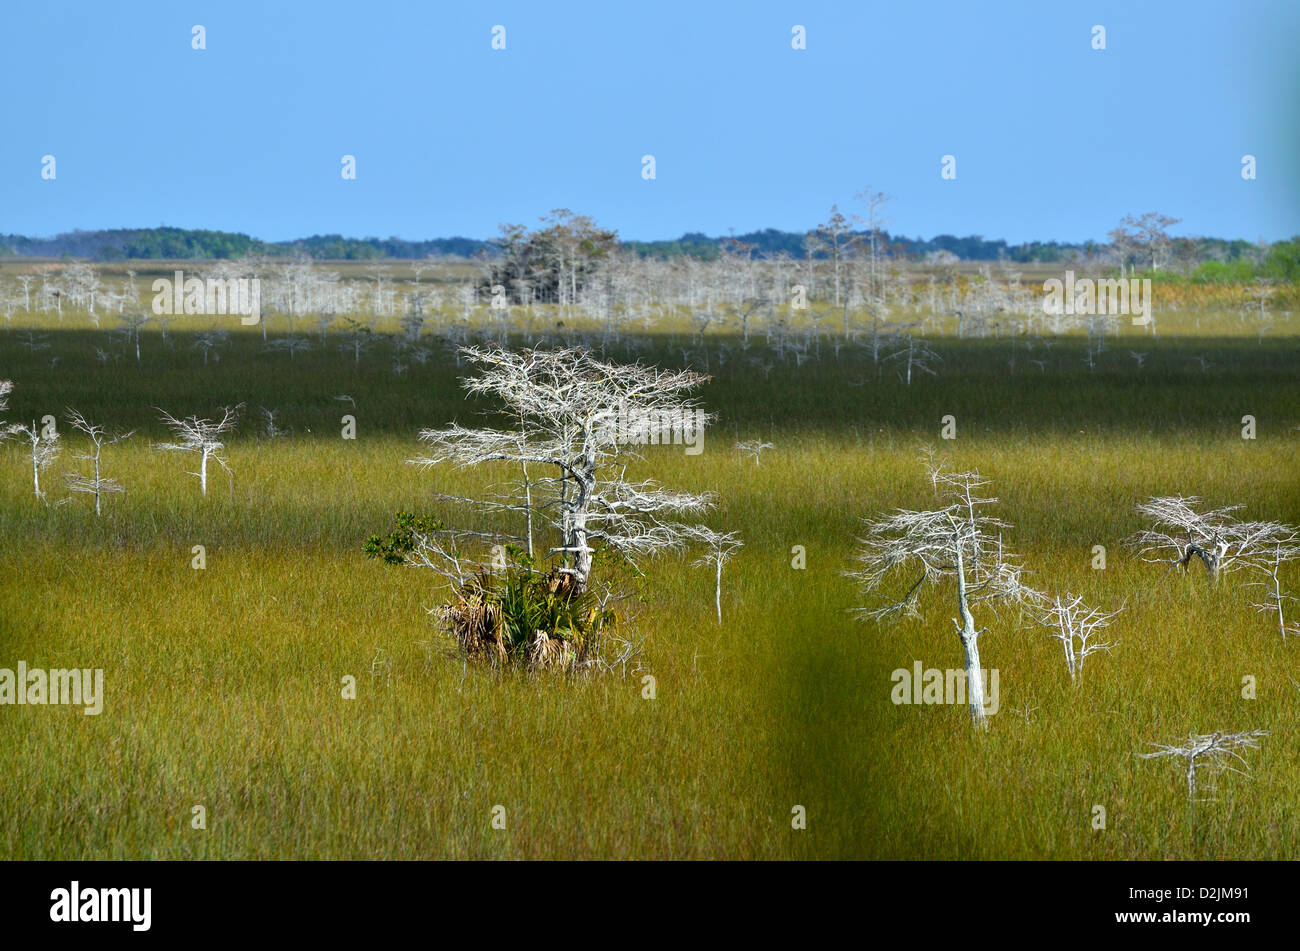 Bald cypress trees standing in wide span of sea grass. The Everglades National Park, Florida, USA. - Stock Image